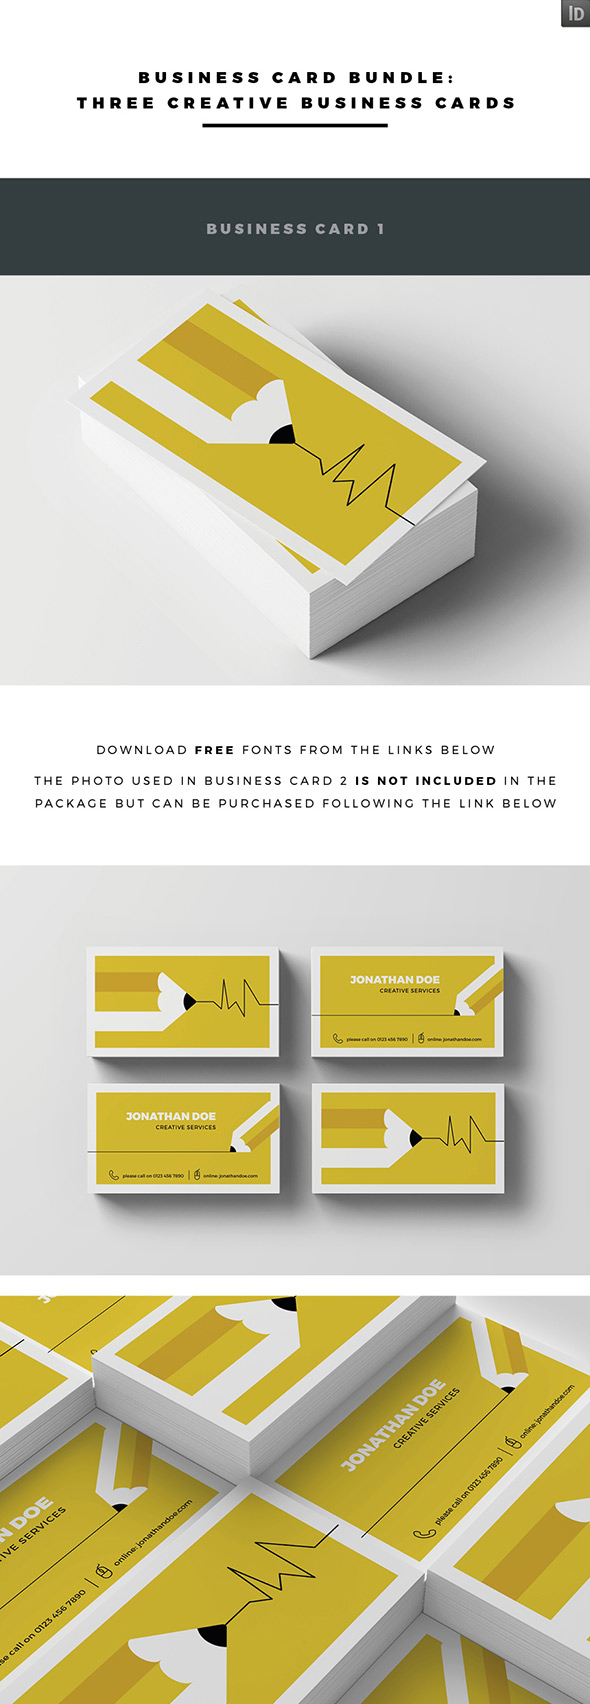 powerpoint business card template